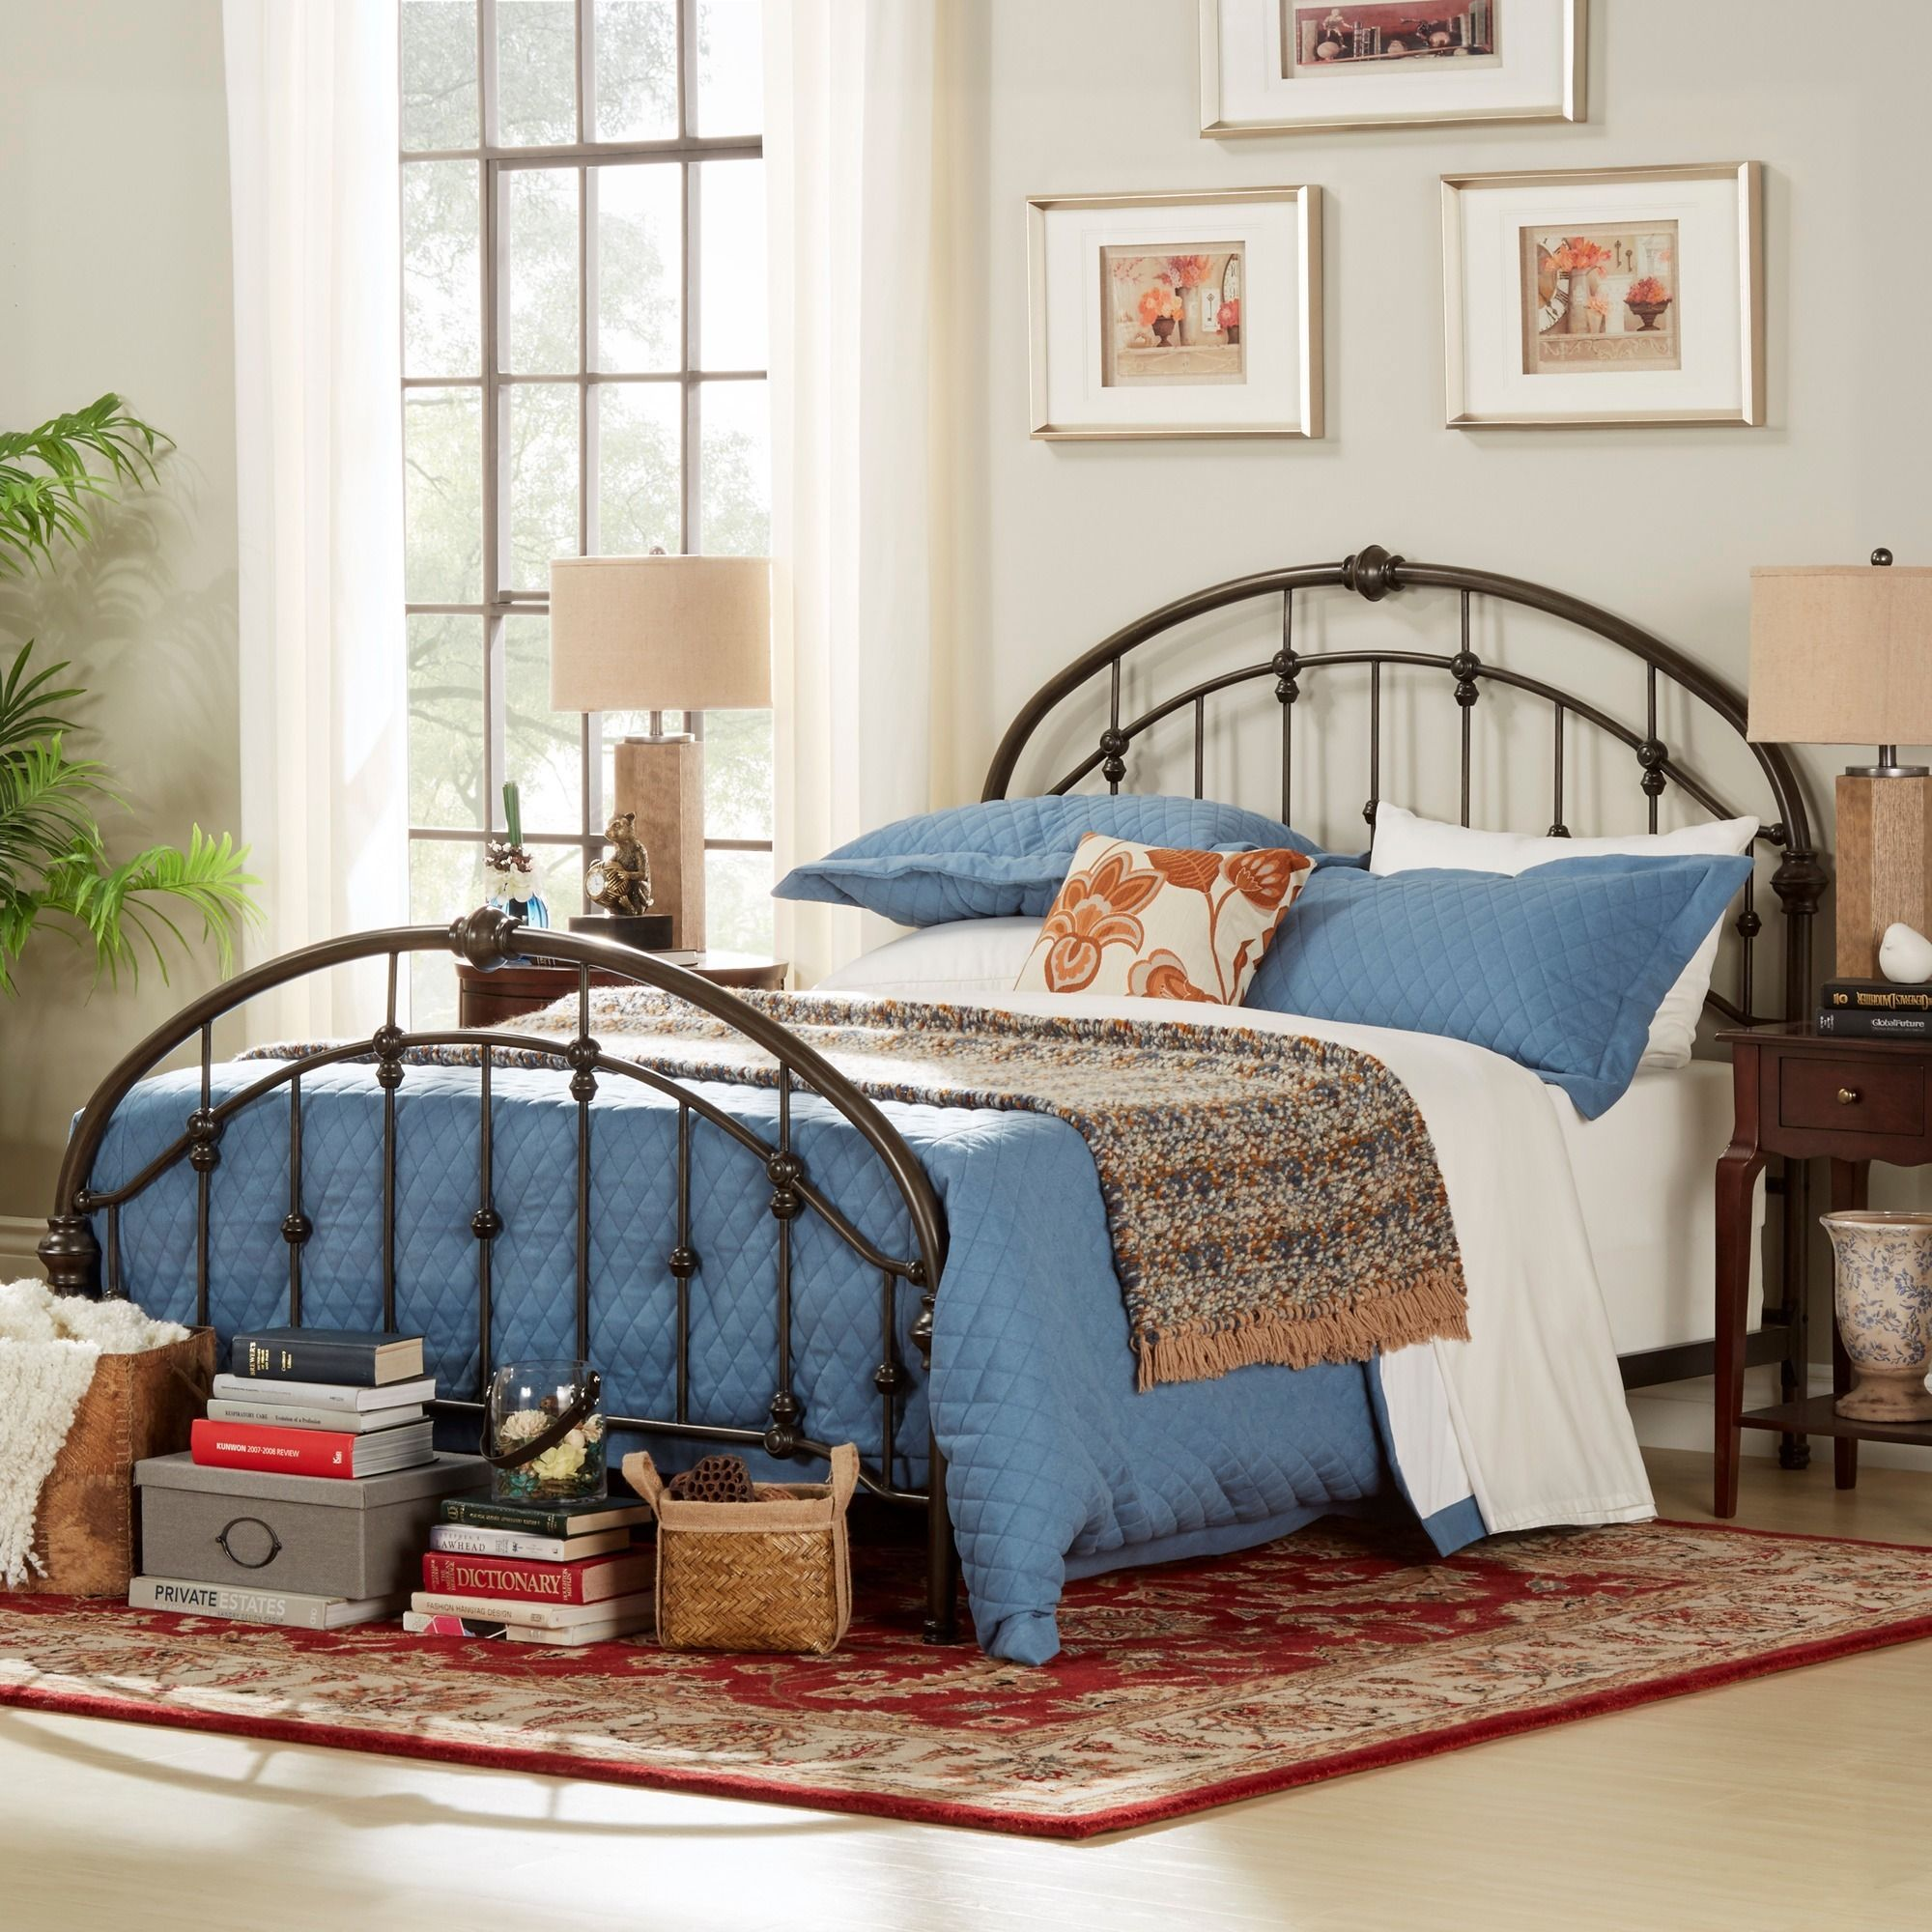 Lacey Round Curved Double Top Arches Victorian Iron King Metal Bed ...